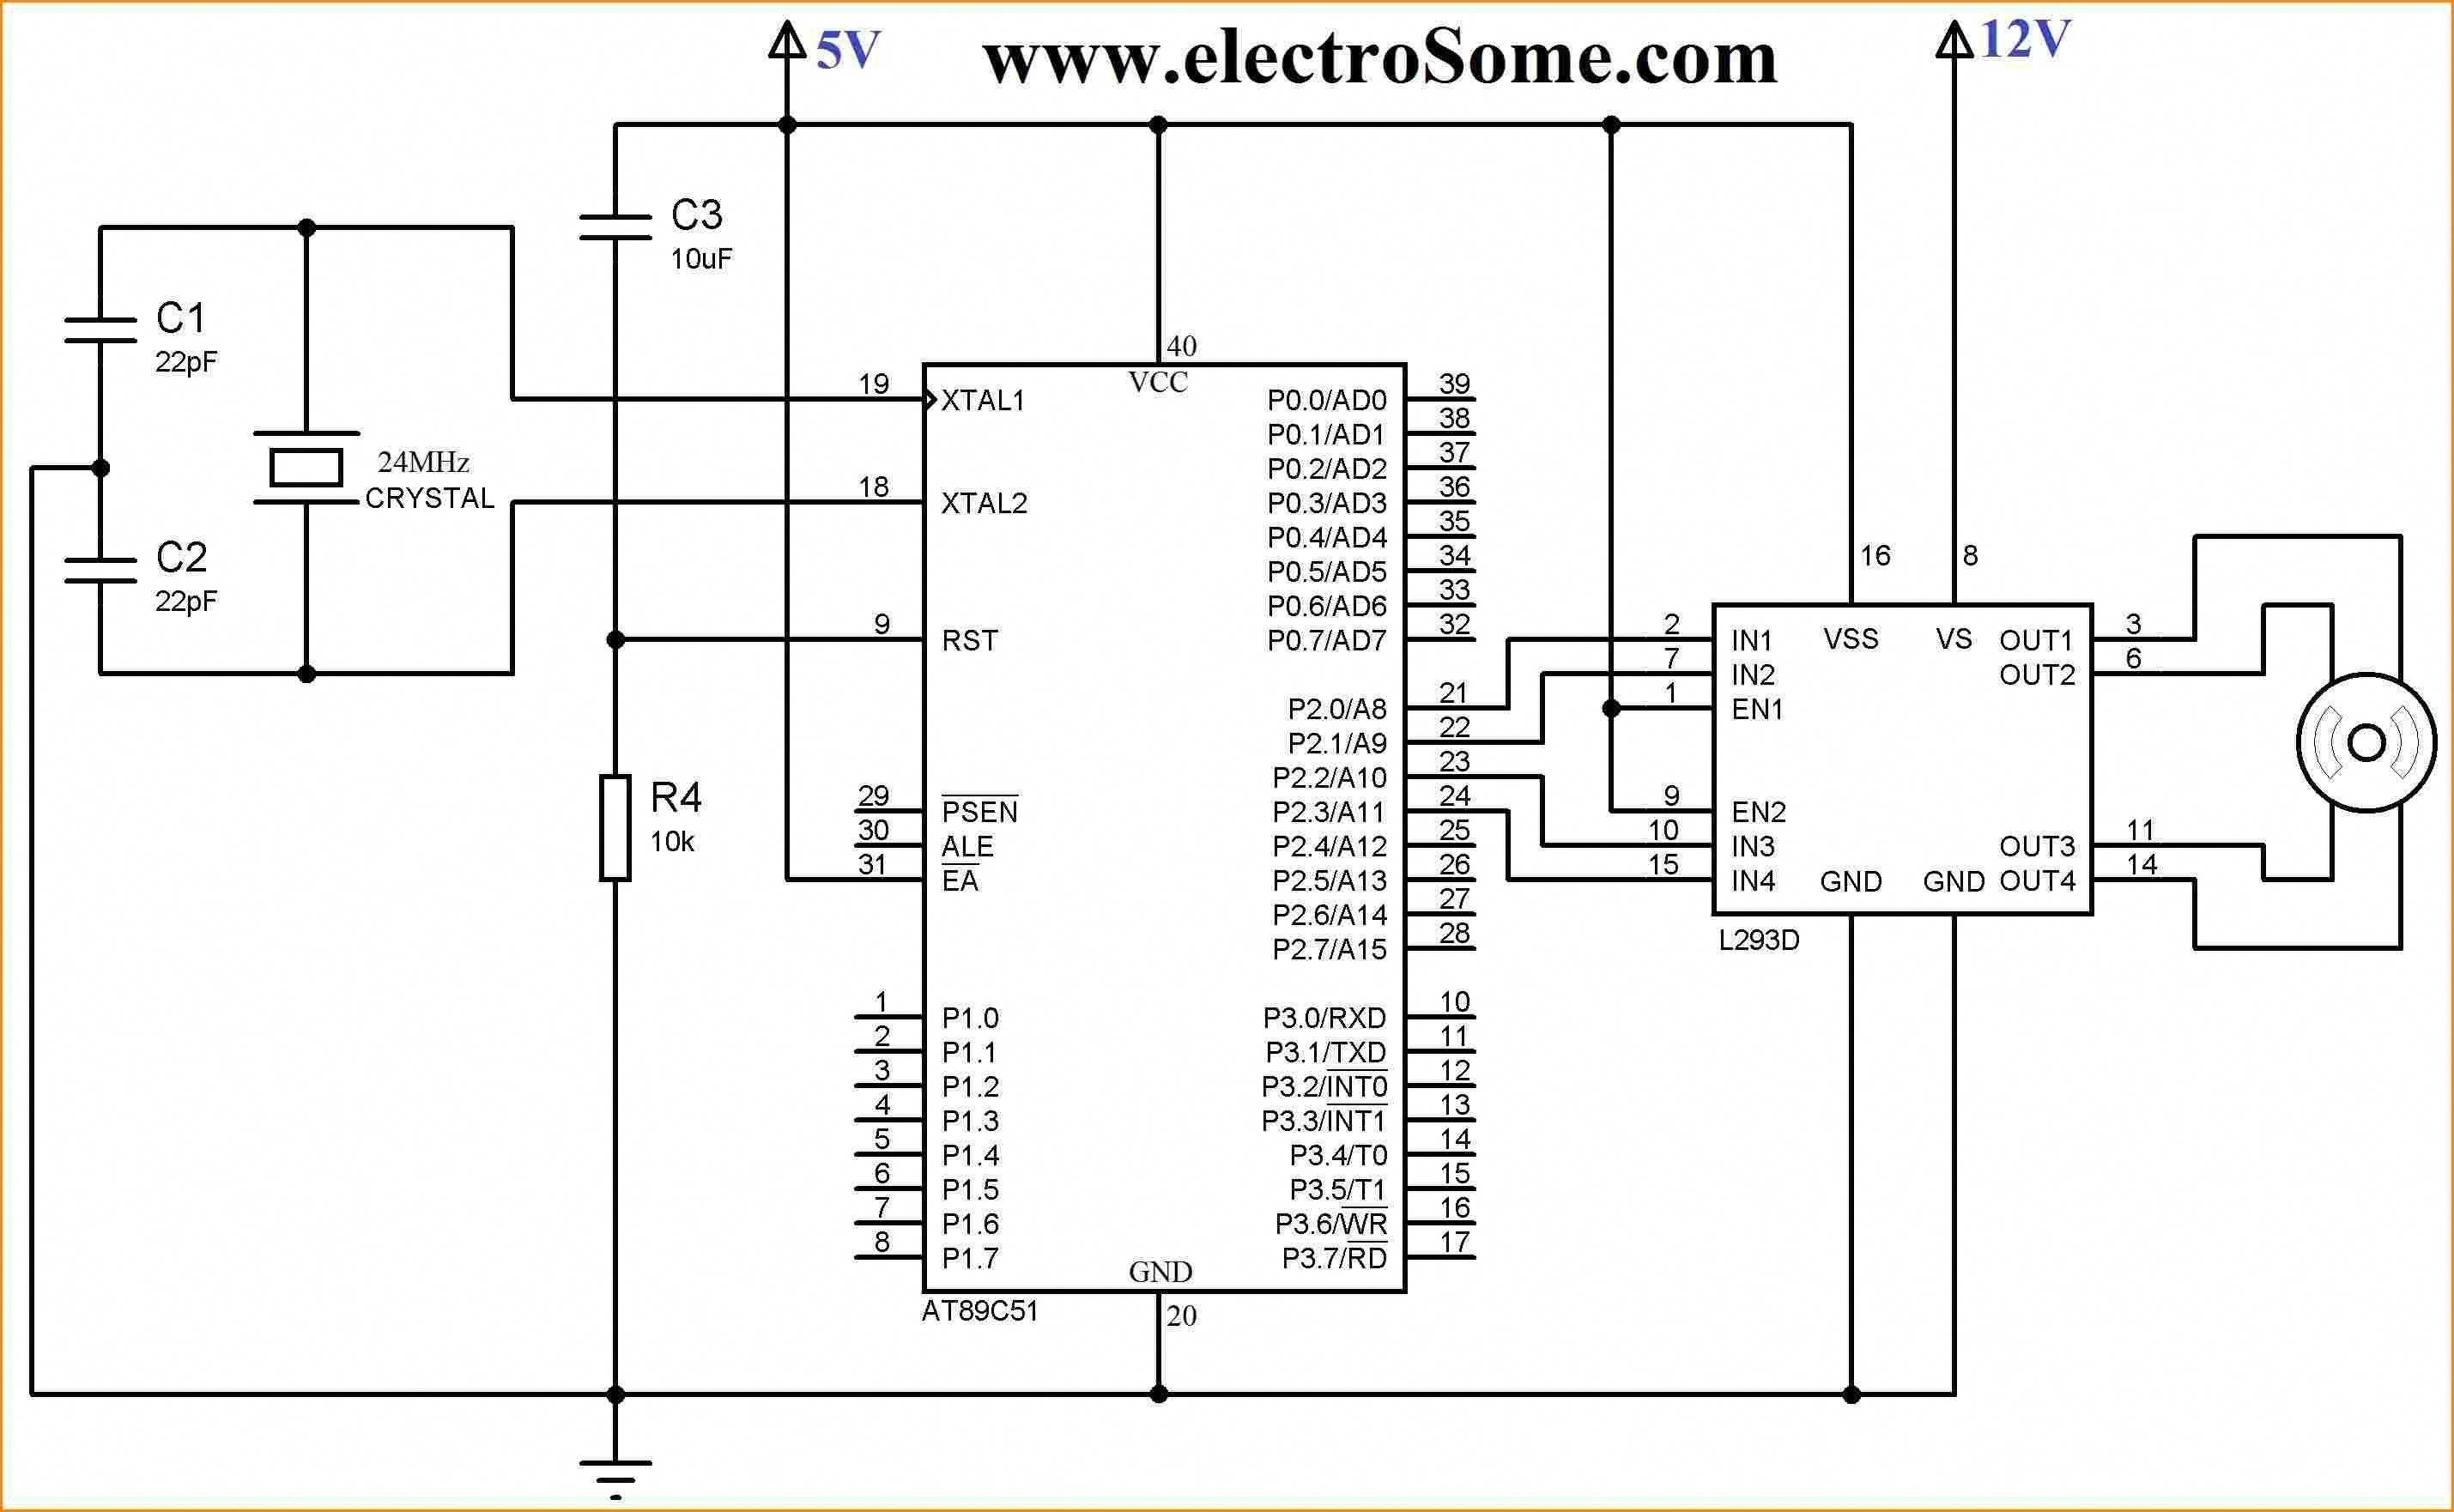 Swann Security Camera N3960 Wiring Diagram Collection ... on